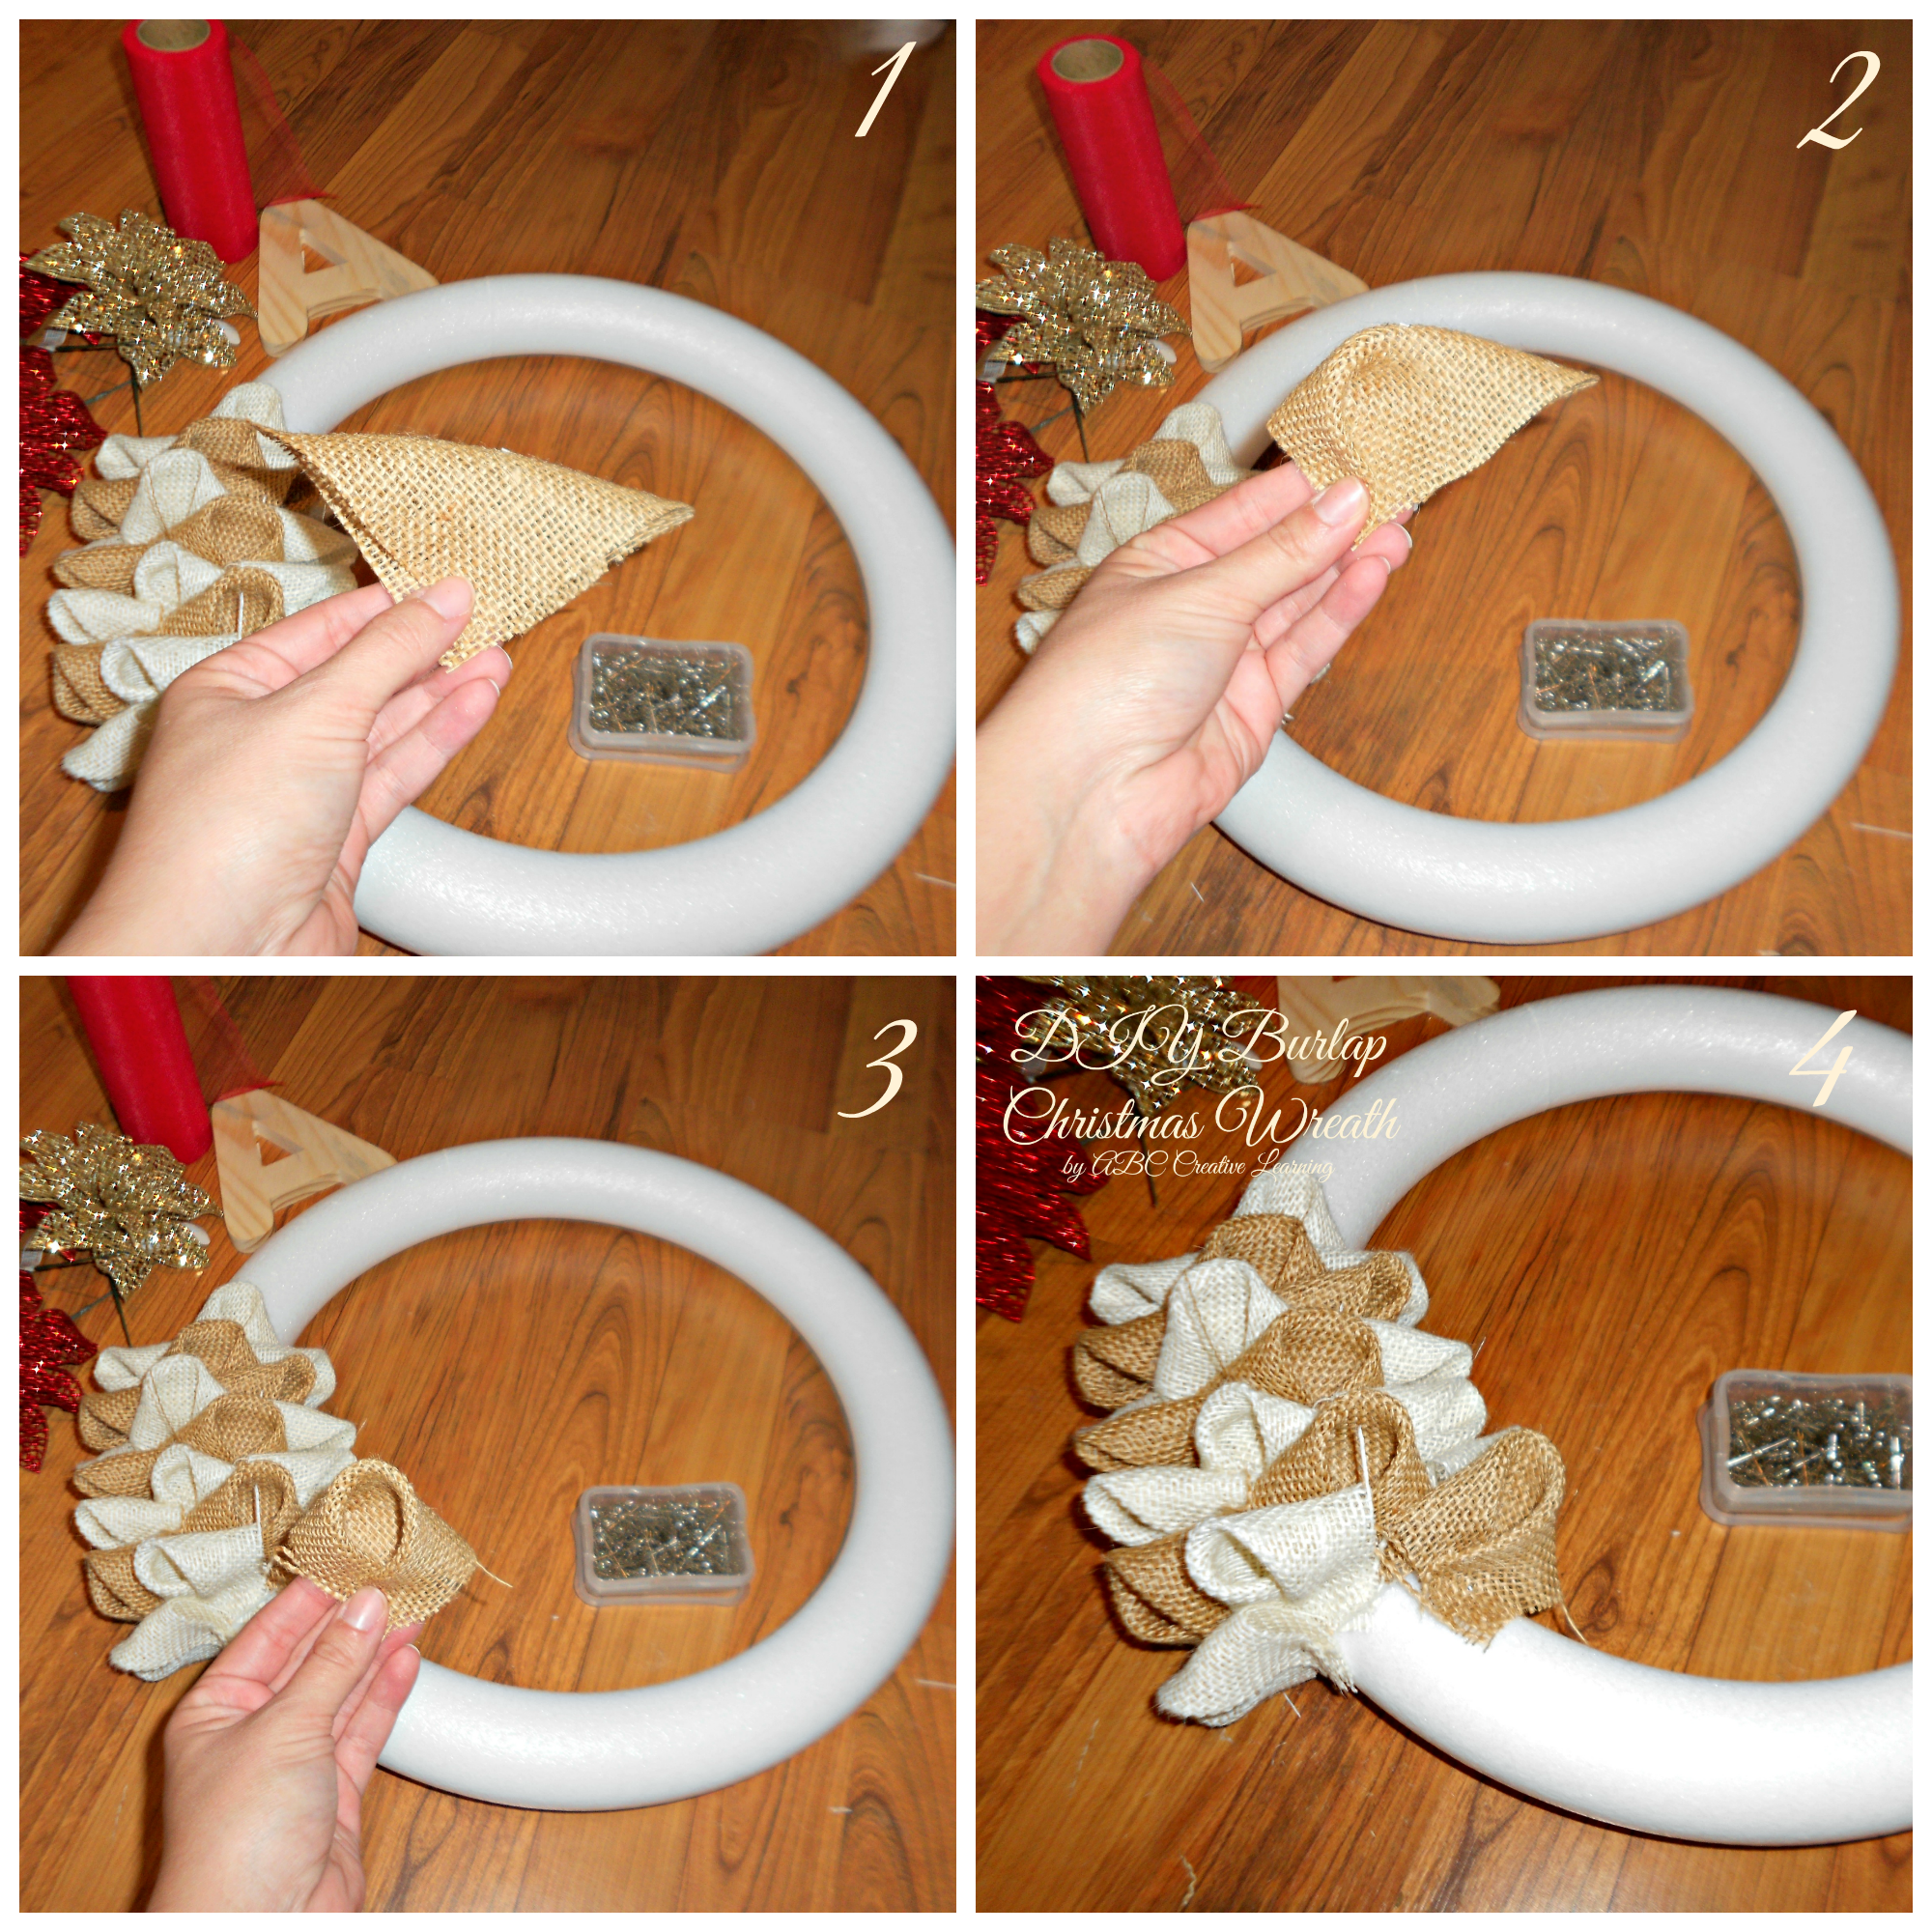 Diy Burlap Christmas Wreath Diy Tutorial Christmas Burlap: burlap xmas wreath